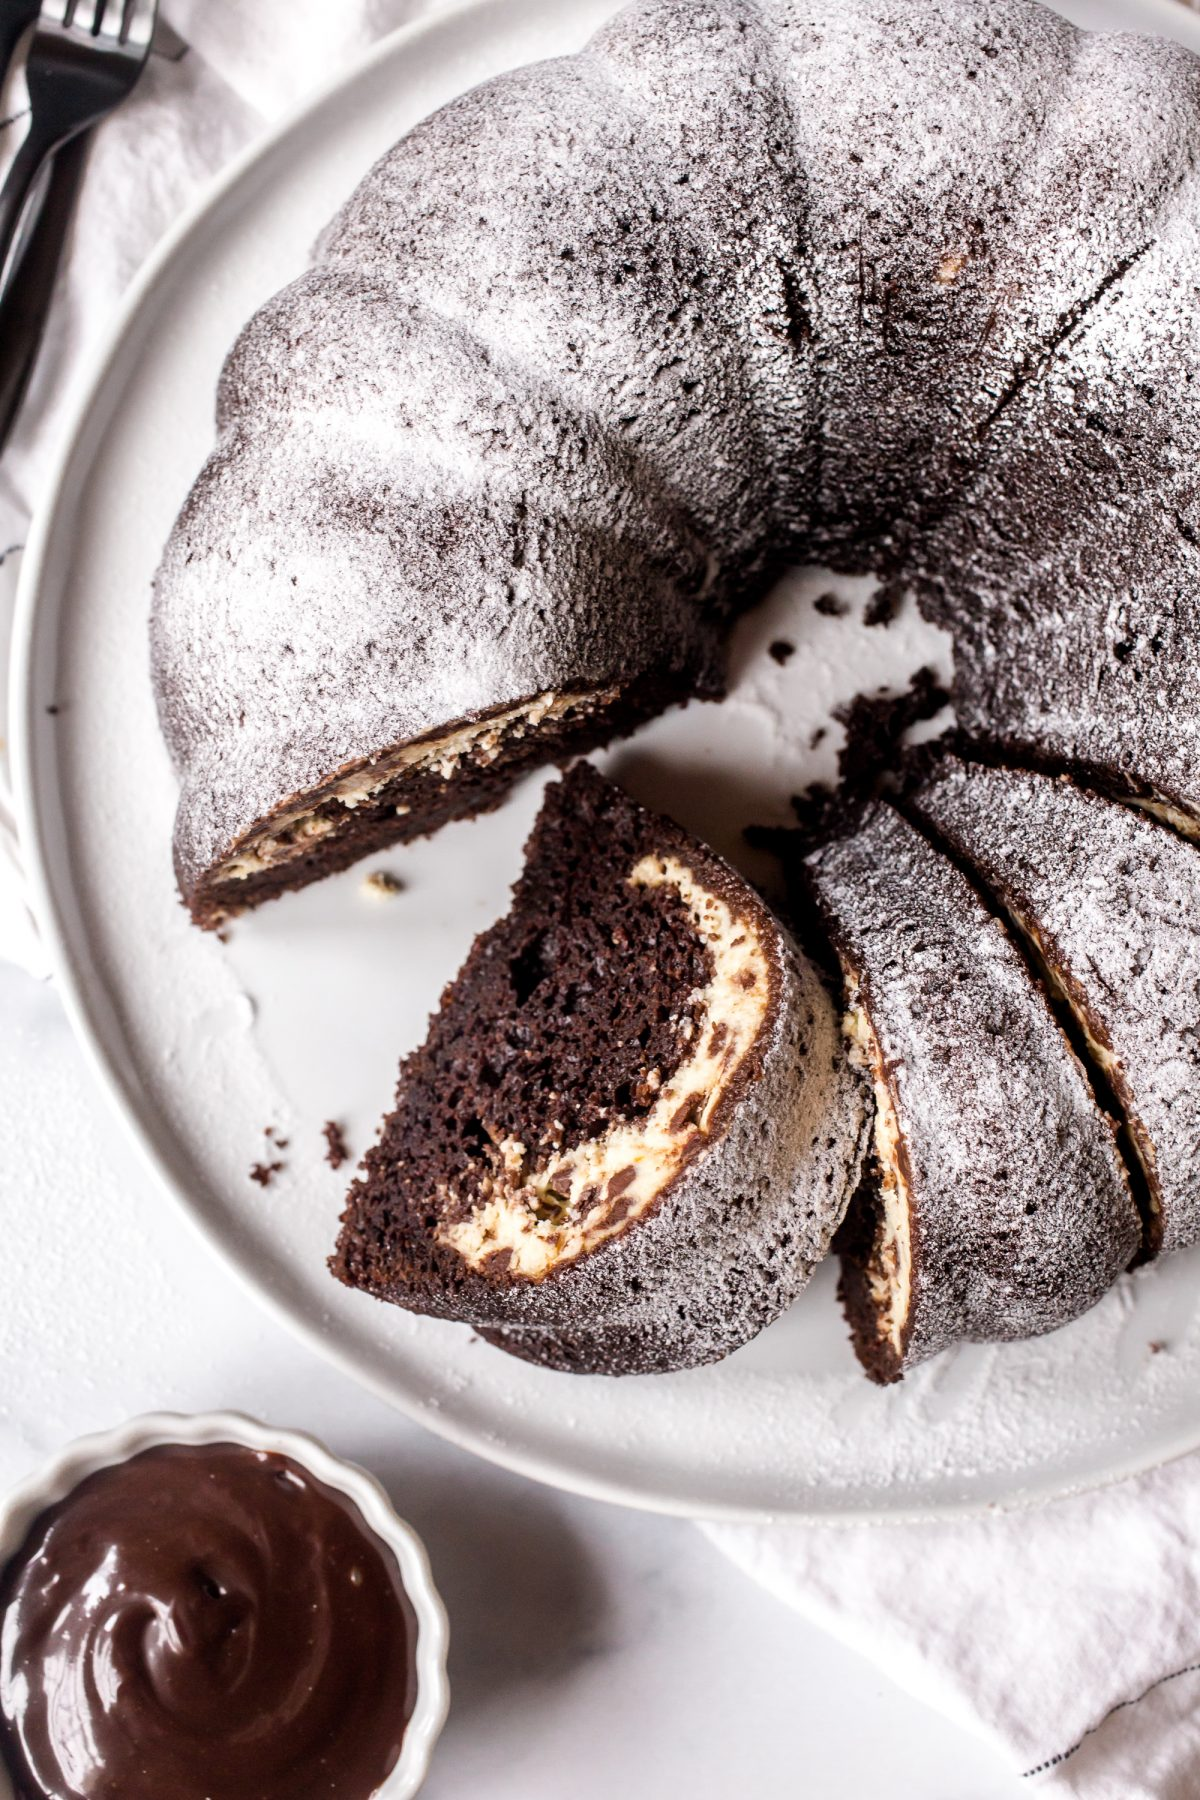 Top shot of a chocolate bundt cake dusted with powdered sugar and filled with cannoli cream